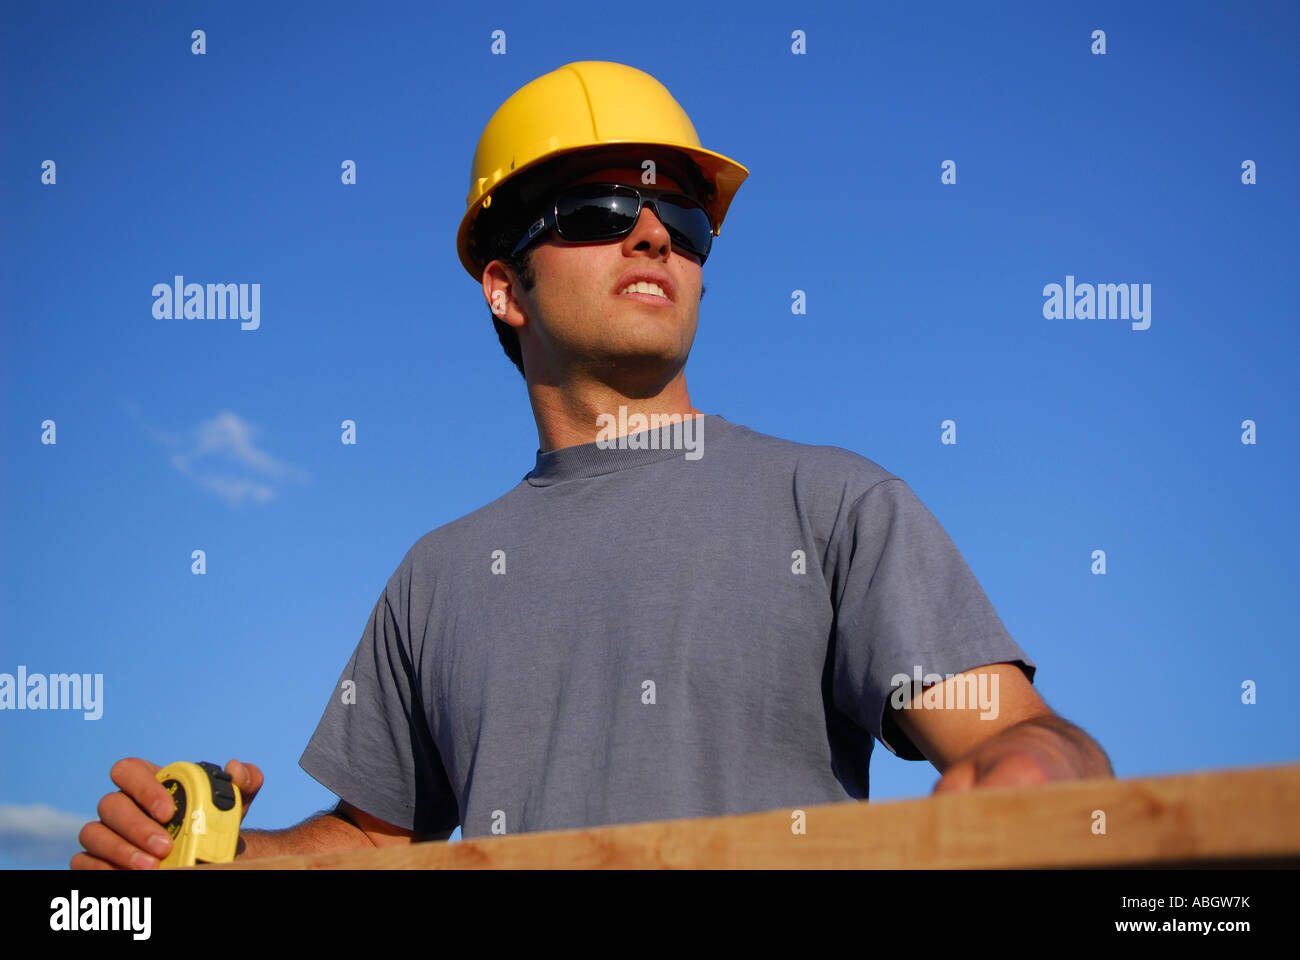 Construction worker carpenter in hard hat looking up while measuring plank of wood with tape measure against blue - Stock Image